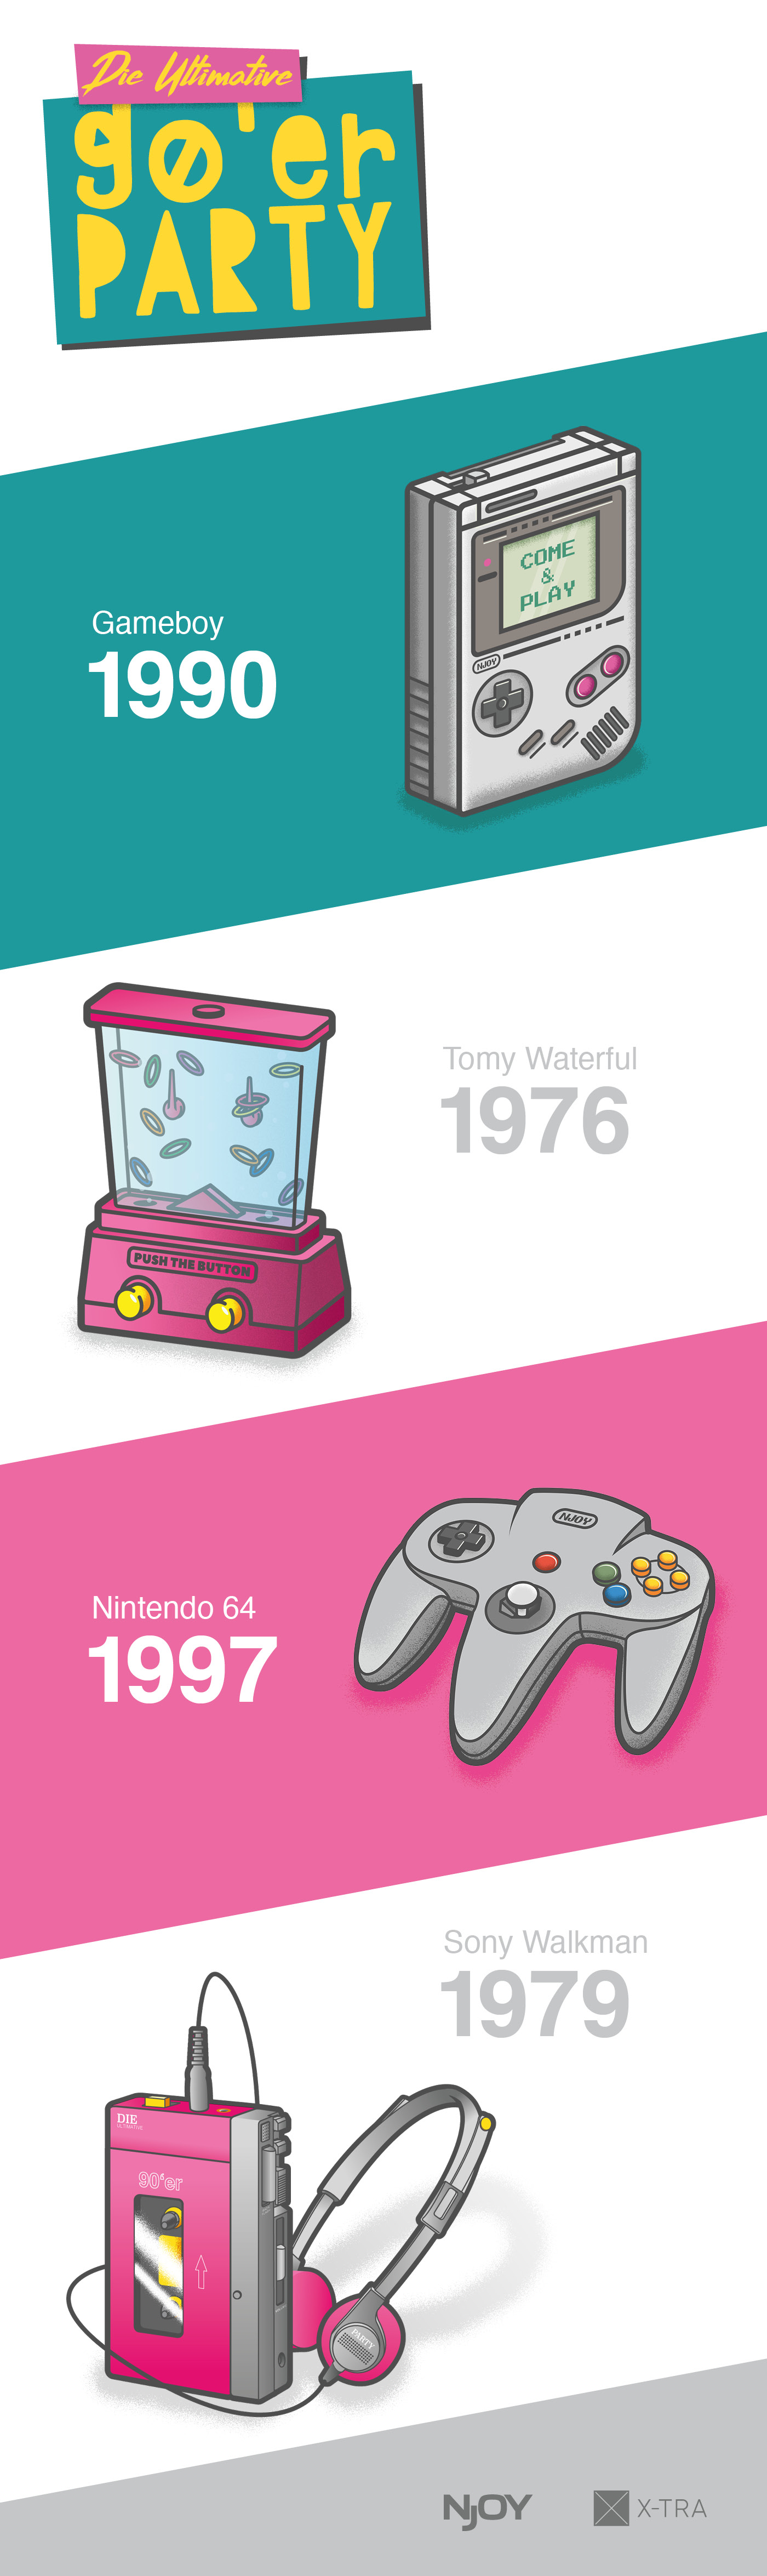 illustration of gameboy, tomy waterful, n64, walkman